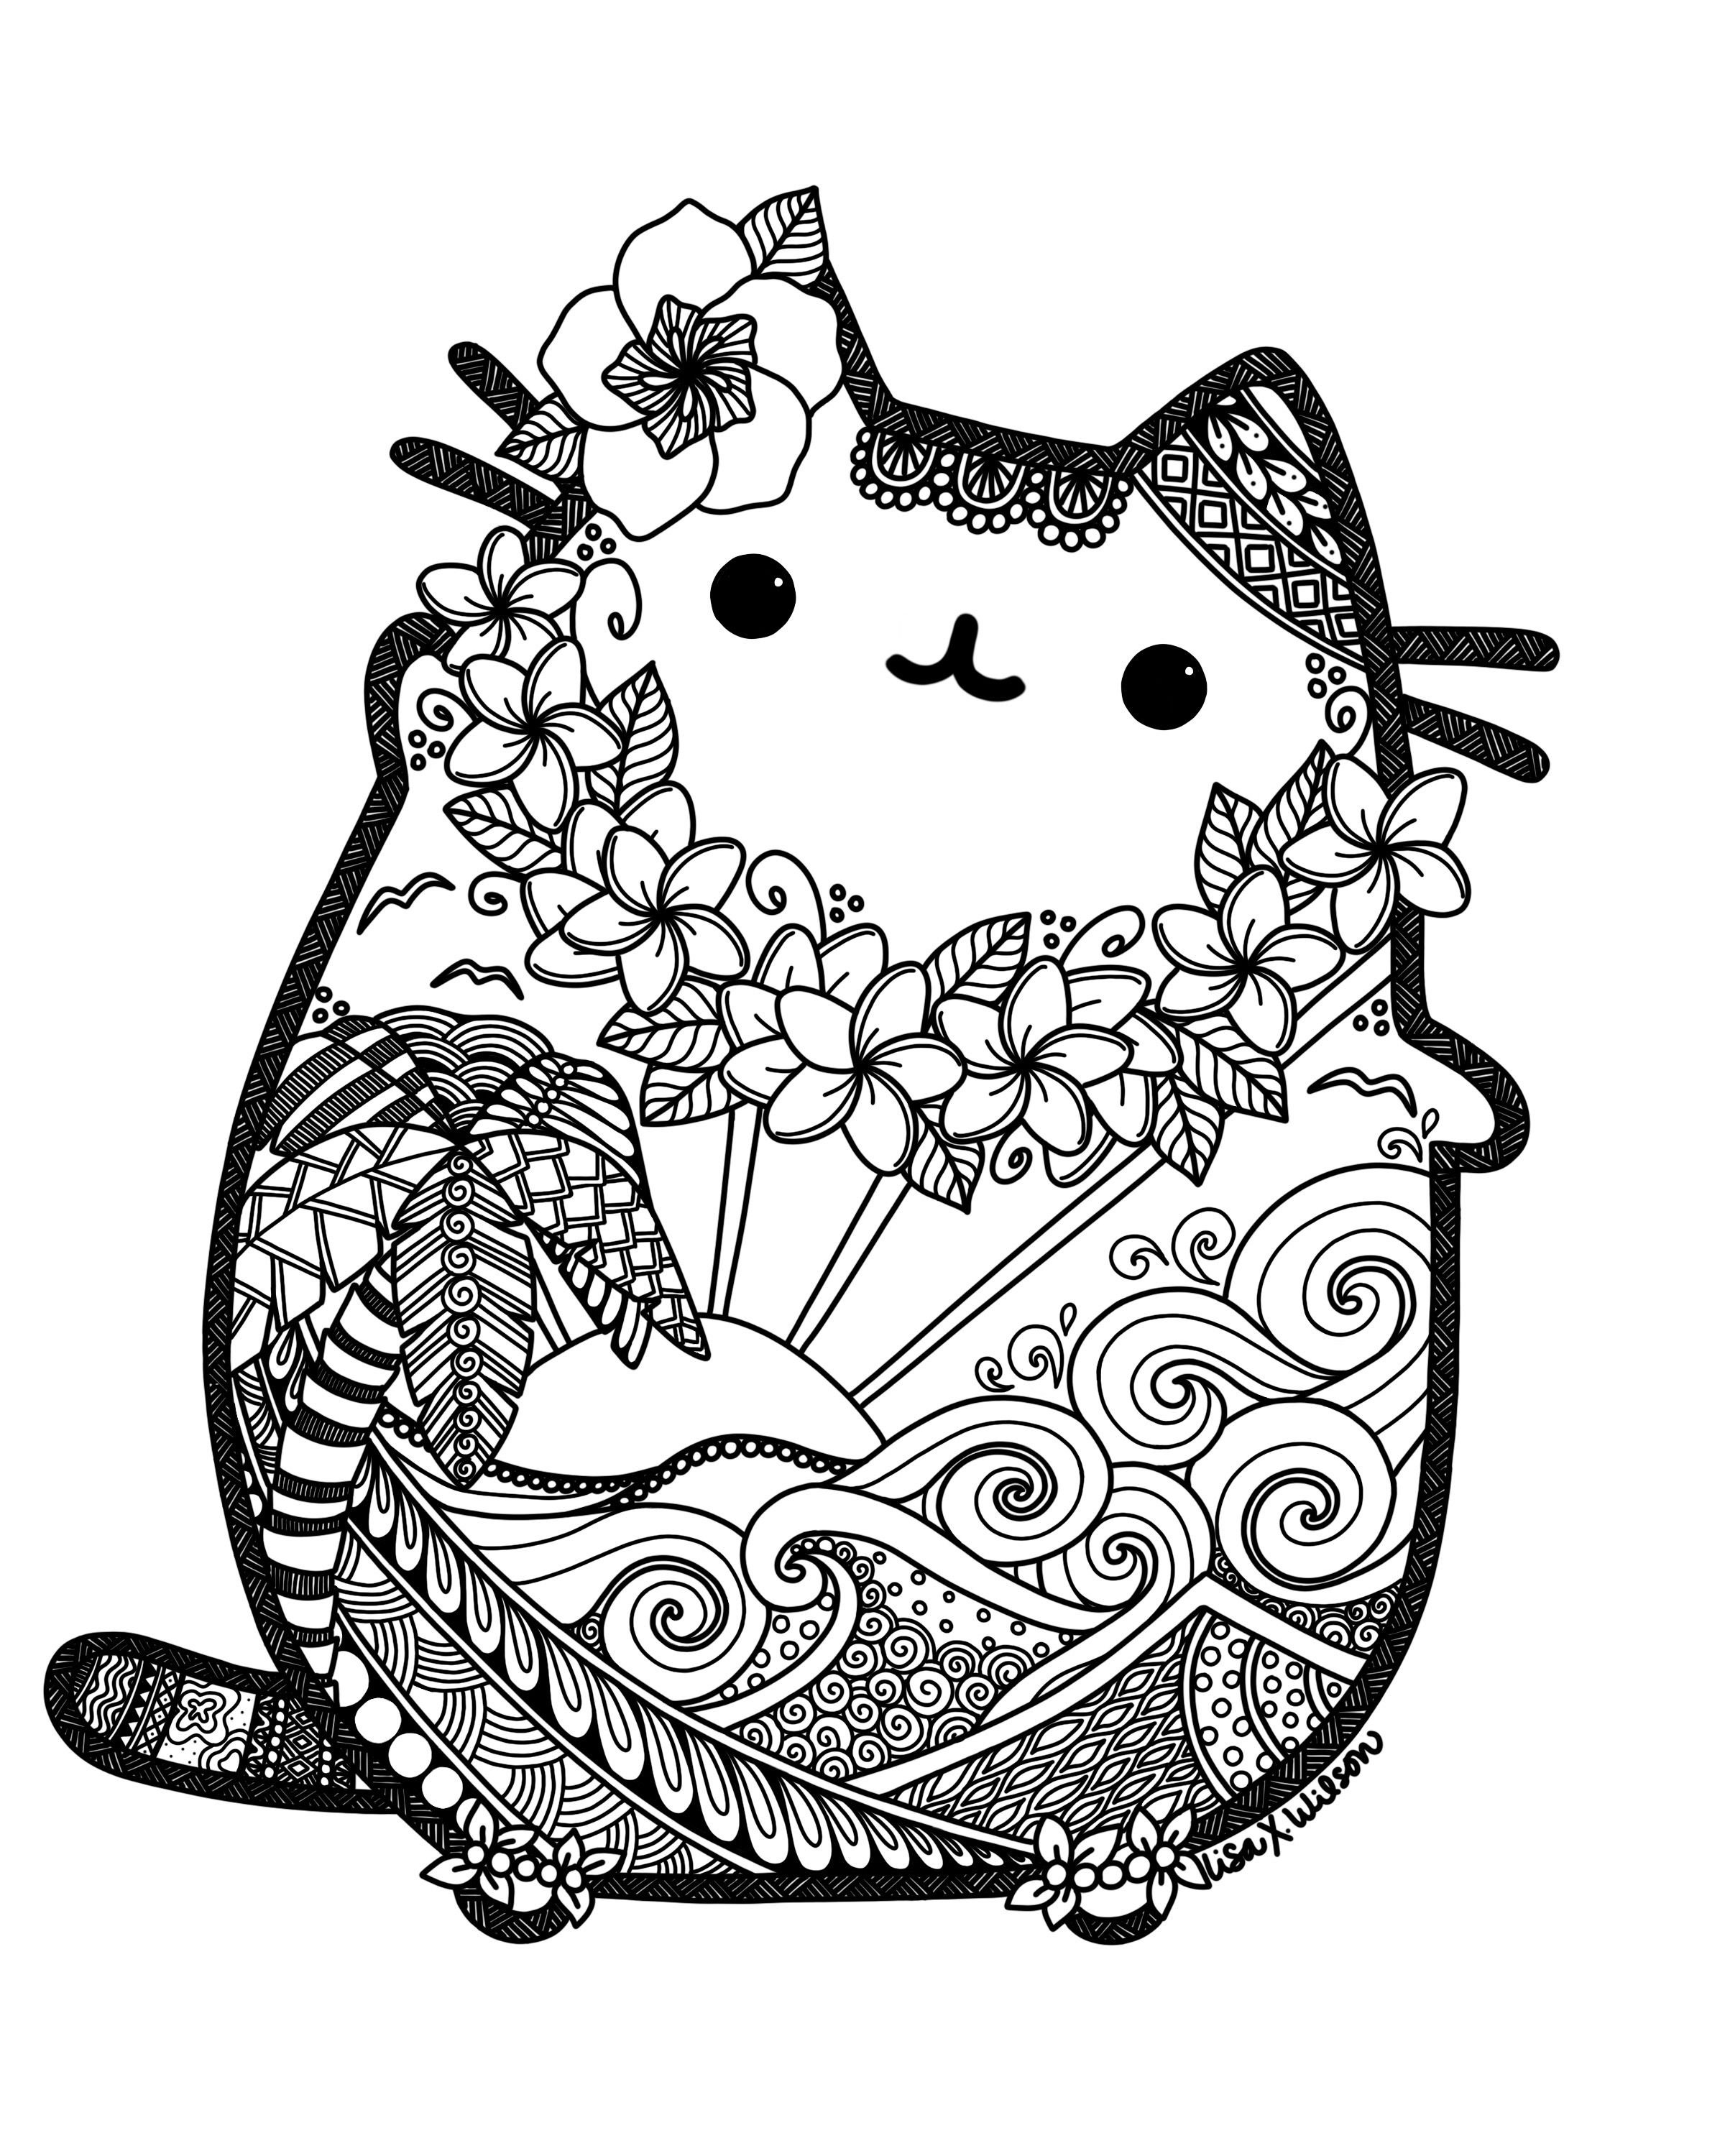 Hawaiian Pusheen fan art | How to be a Cat | Pinterest | Mandalas ...